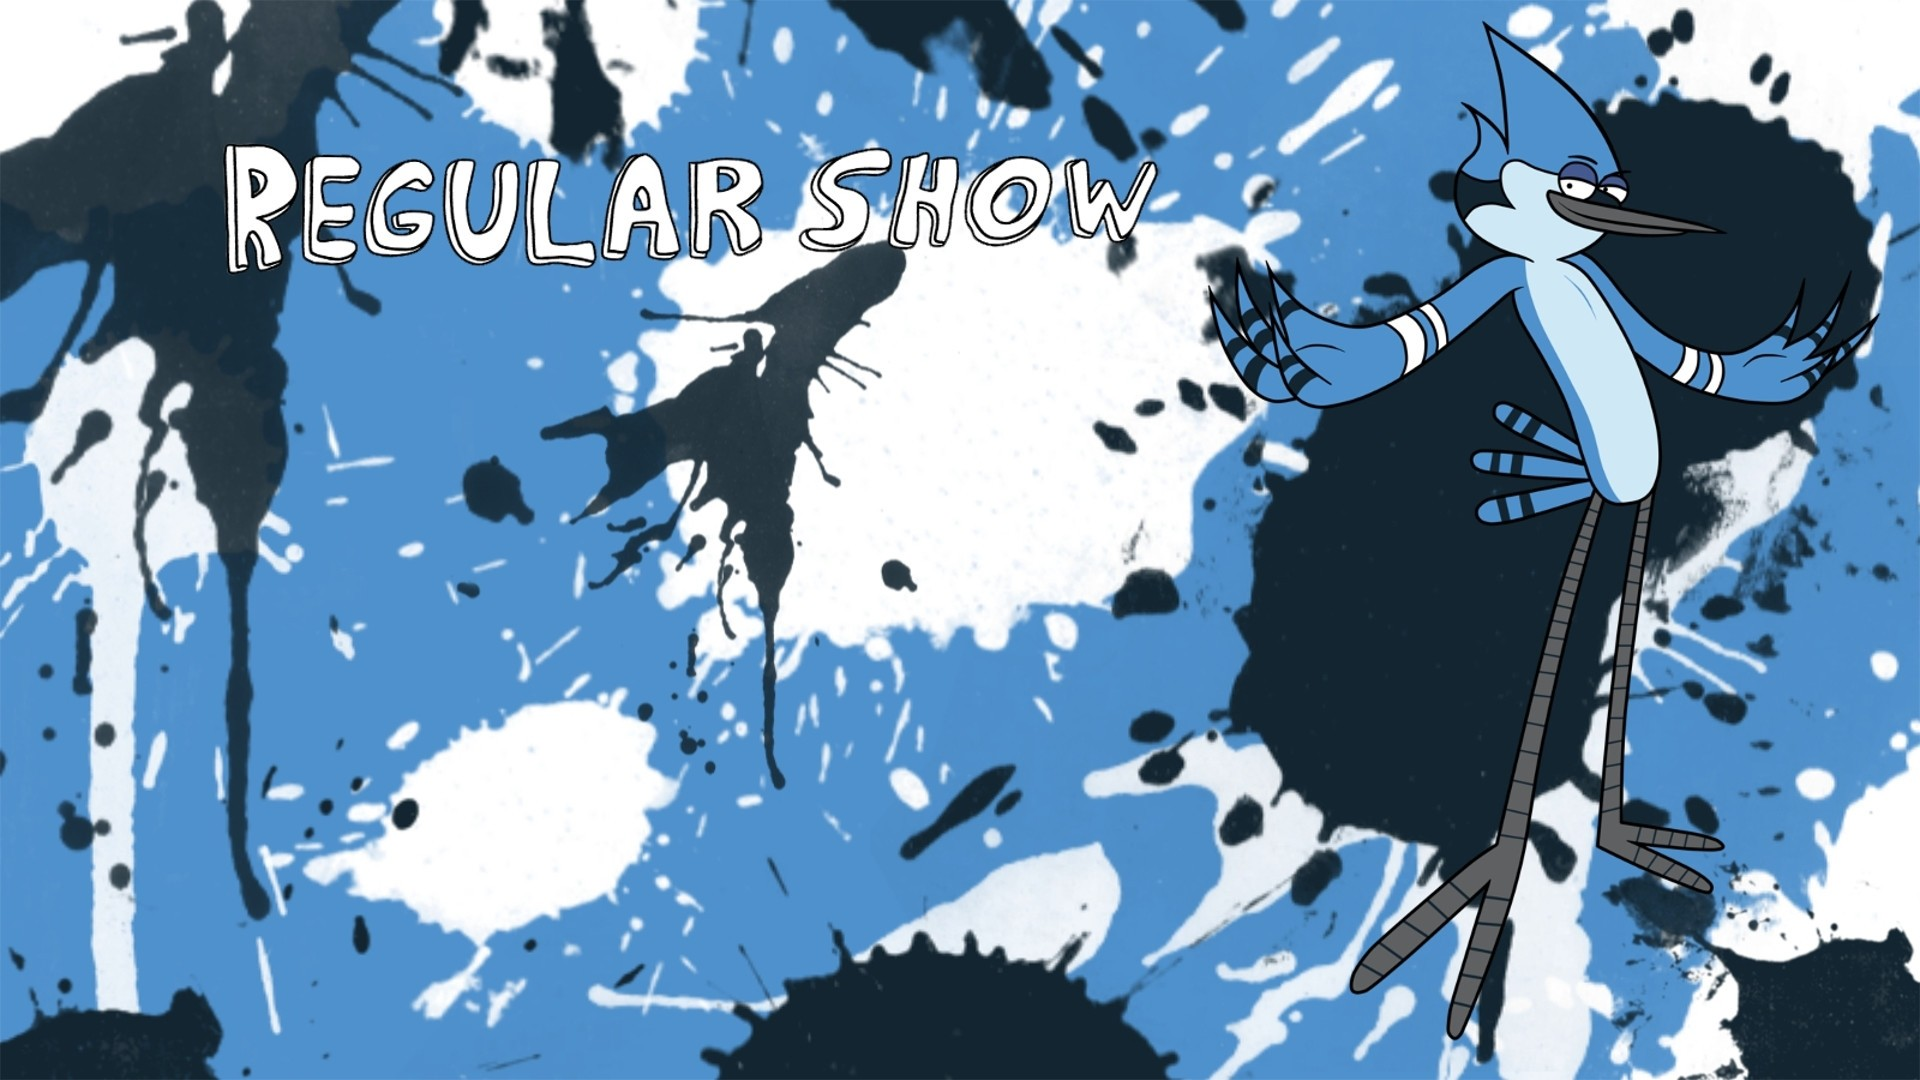 Regular Show Wallpaper and Background